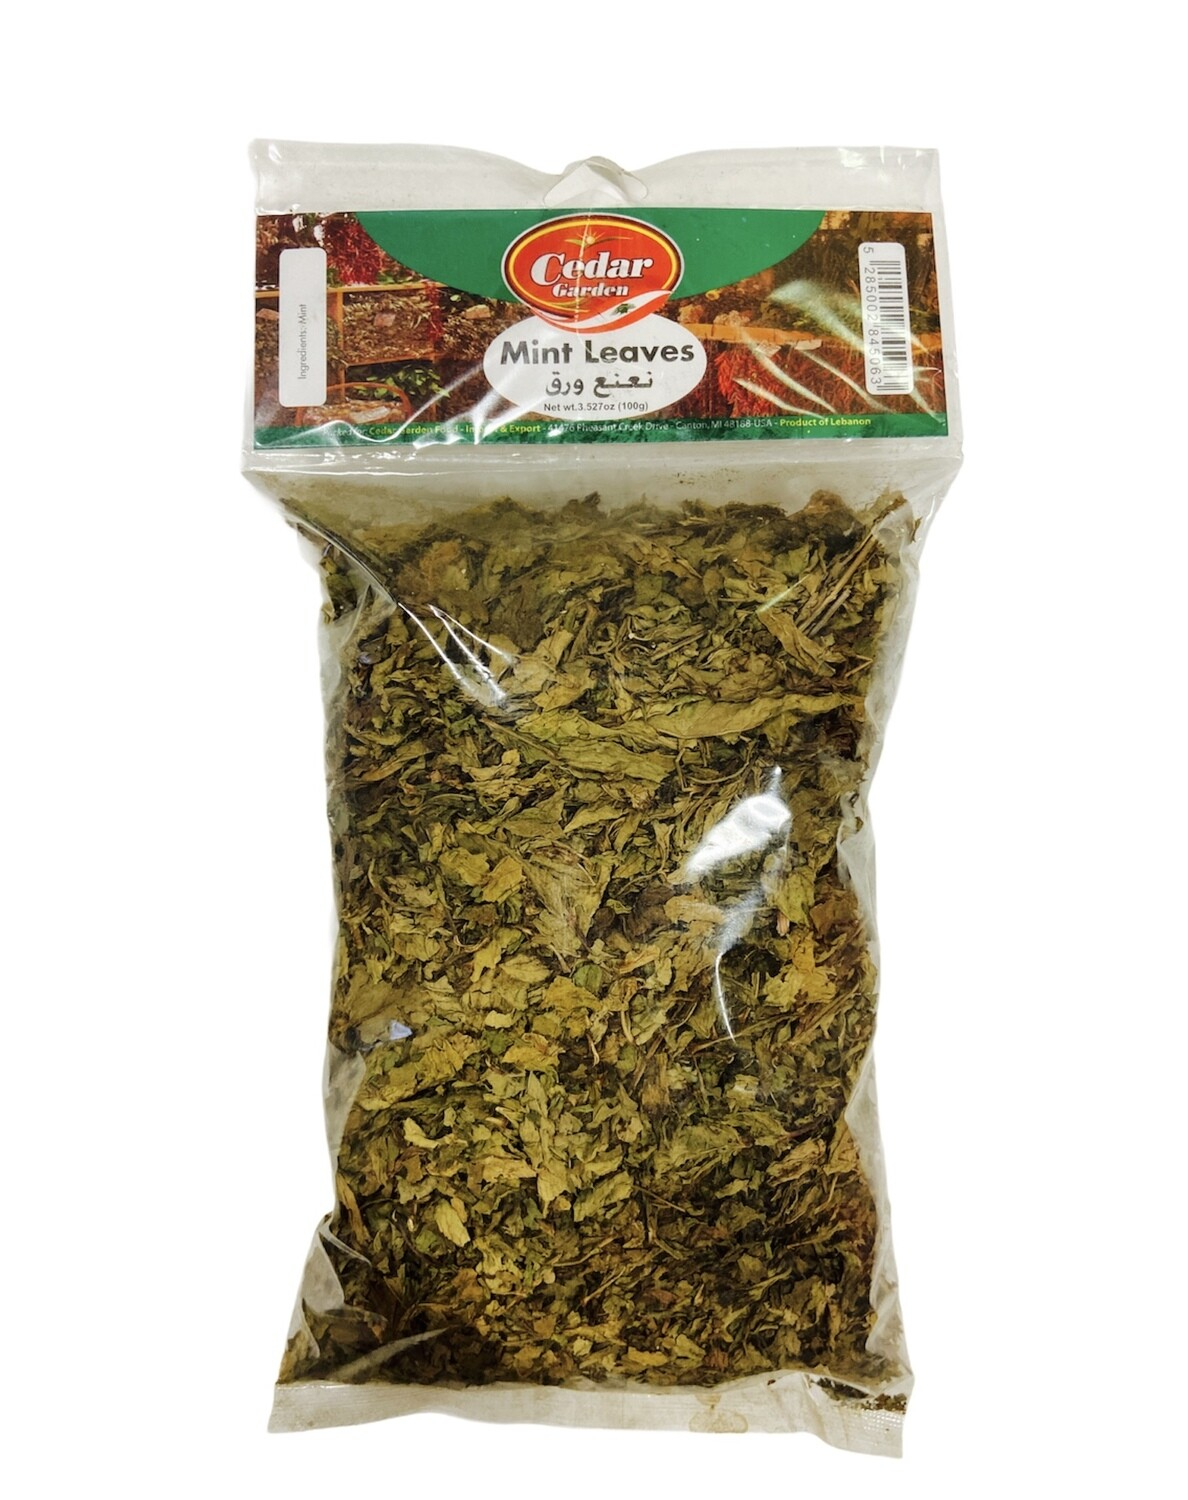 Cedar Garden Mint Leaves 24 x 100g